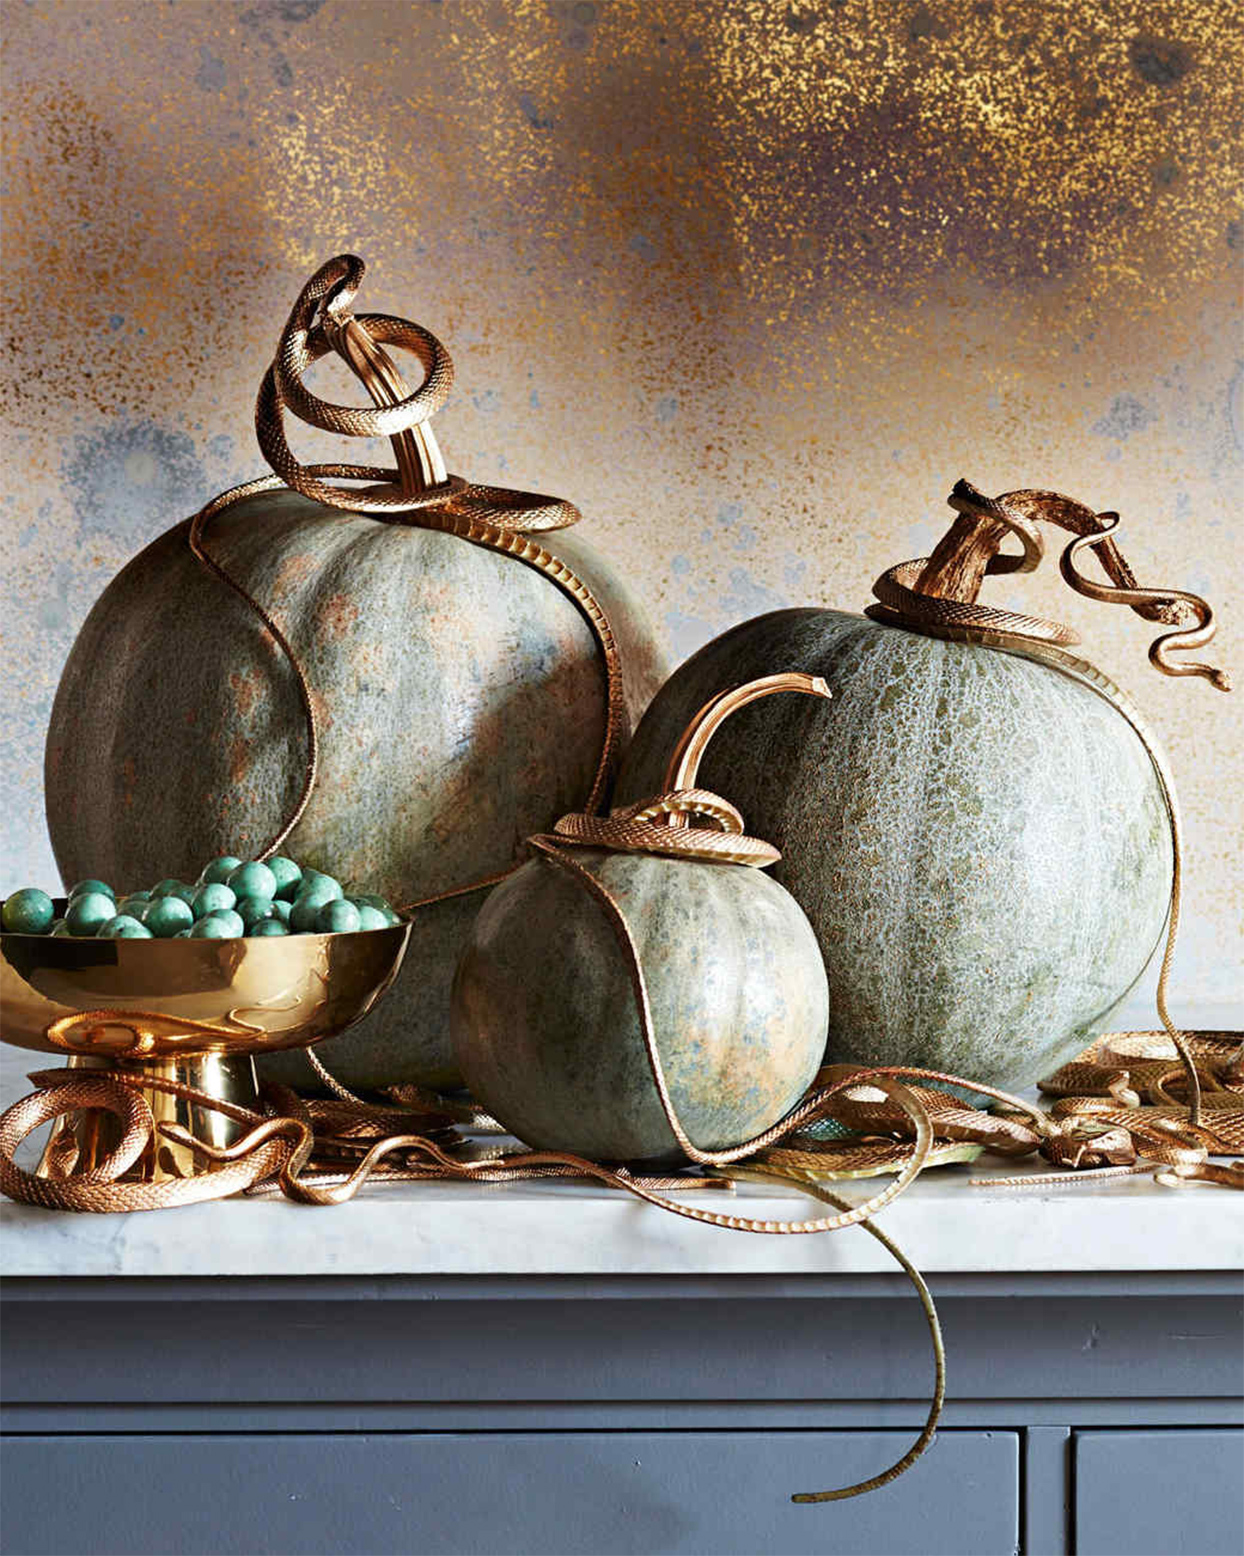 pumpkins adorned with gold snakes